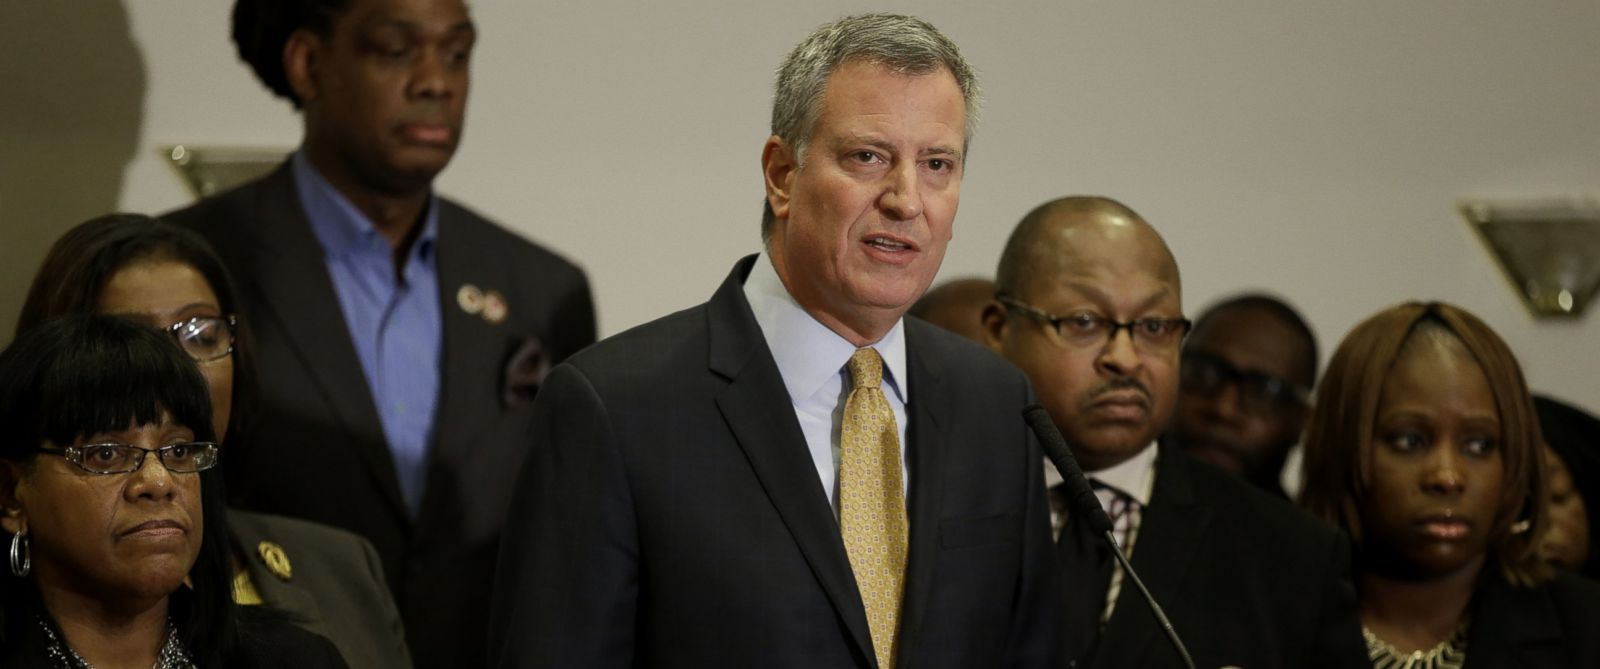 PHOTO: New York City Mayor Bill de Blasio, surrounded by community leaders, speaks to reporters about the grand jurys decision in the Eric Garner case in the borough of Staten Island in New York, Dec. 3, 2014.